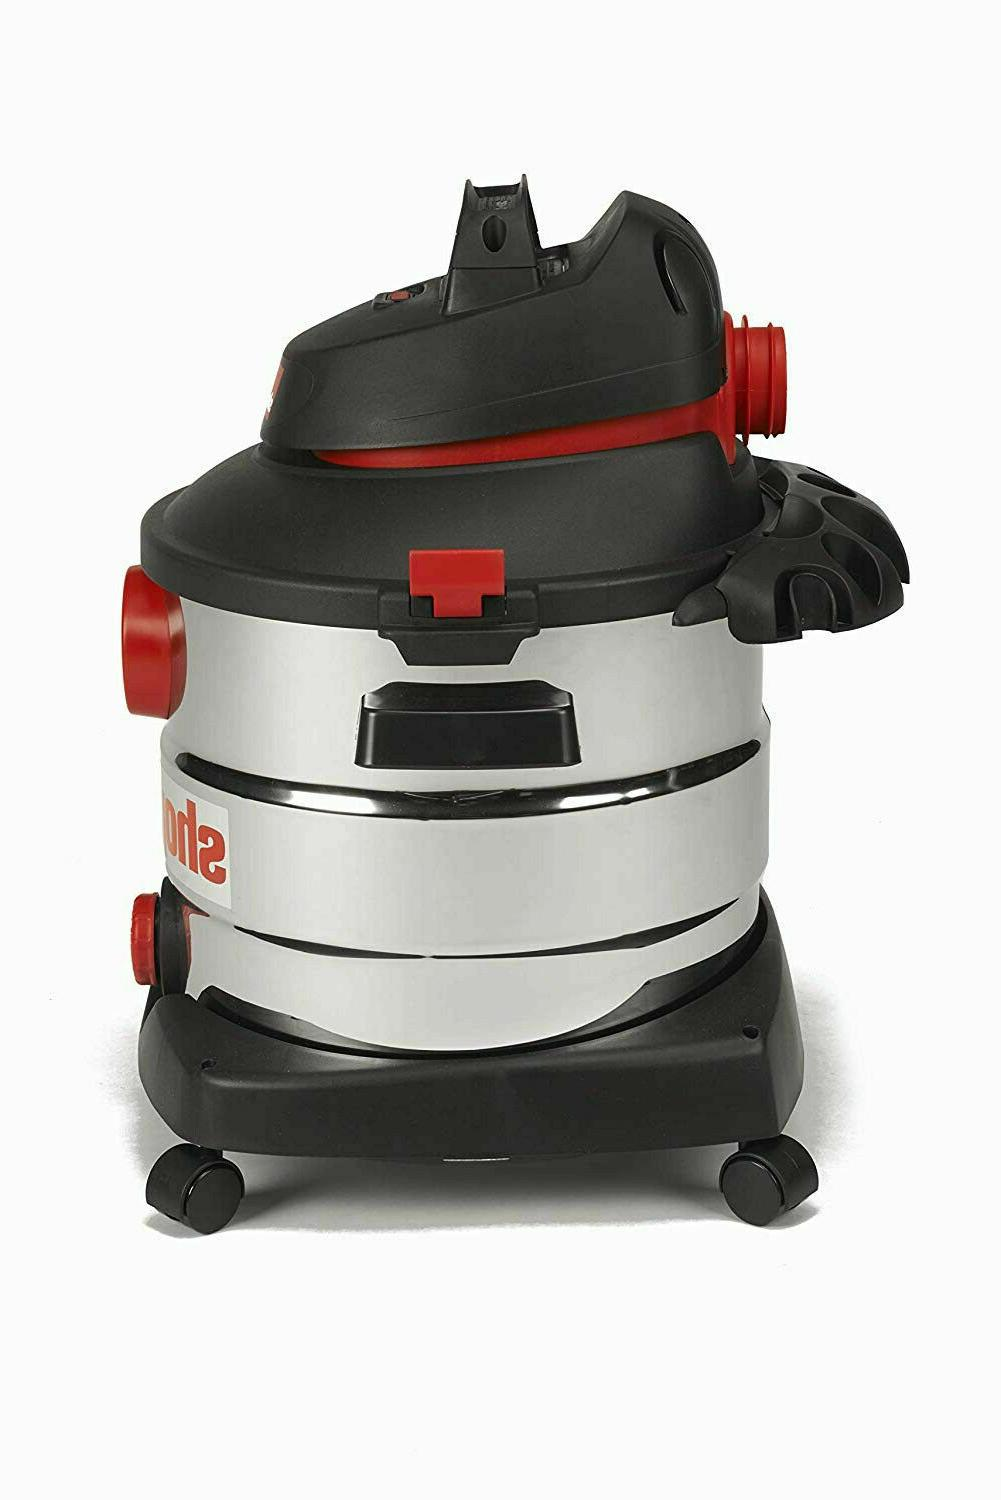 NEW 8 Wet Dry Shop Vac Cleaner Gallon Stainless Steel 6.0